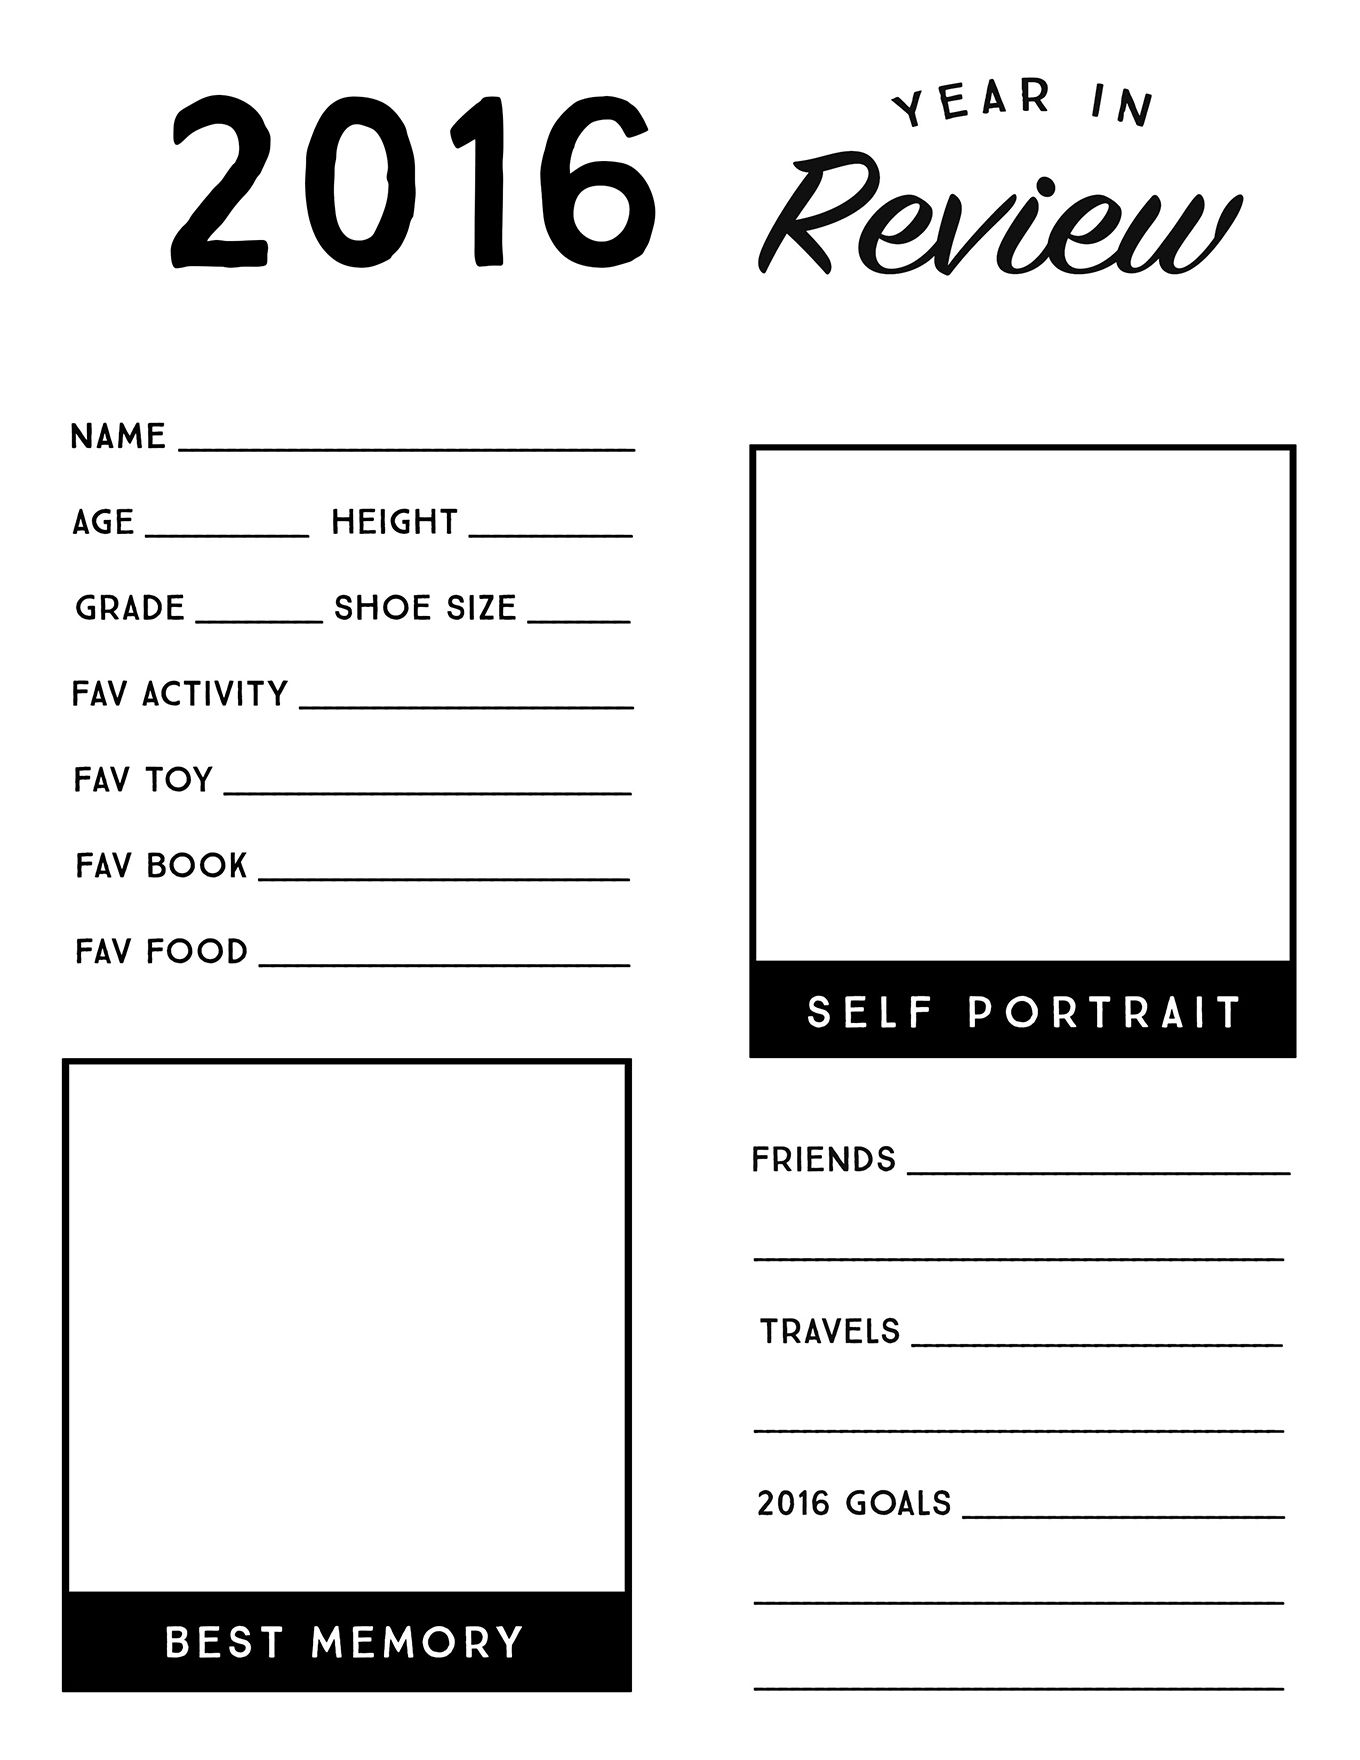 2016 Year In Review Printable For Kids N E W Y E A R S